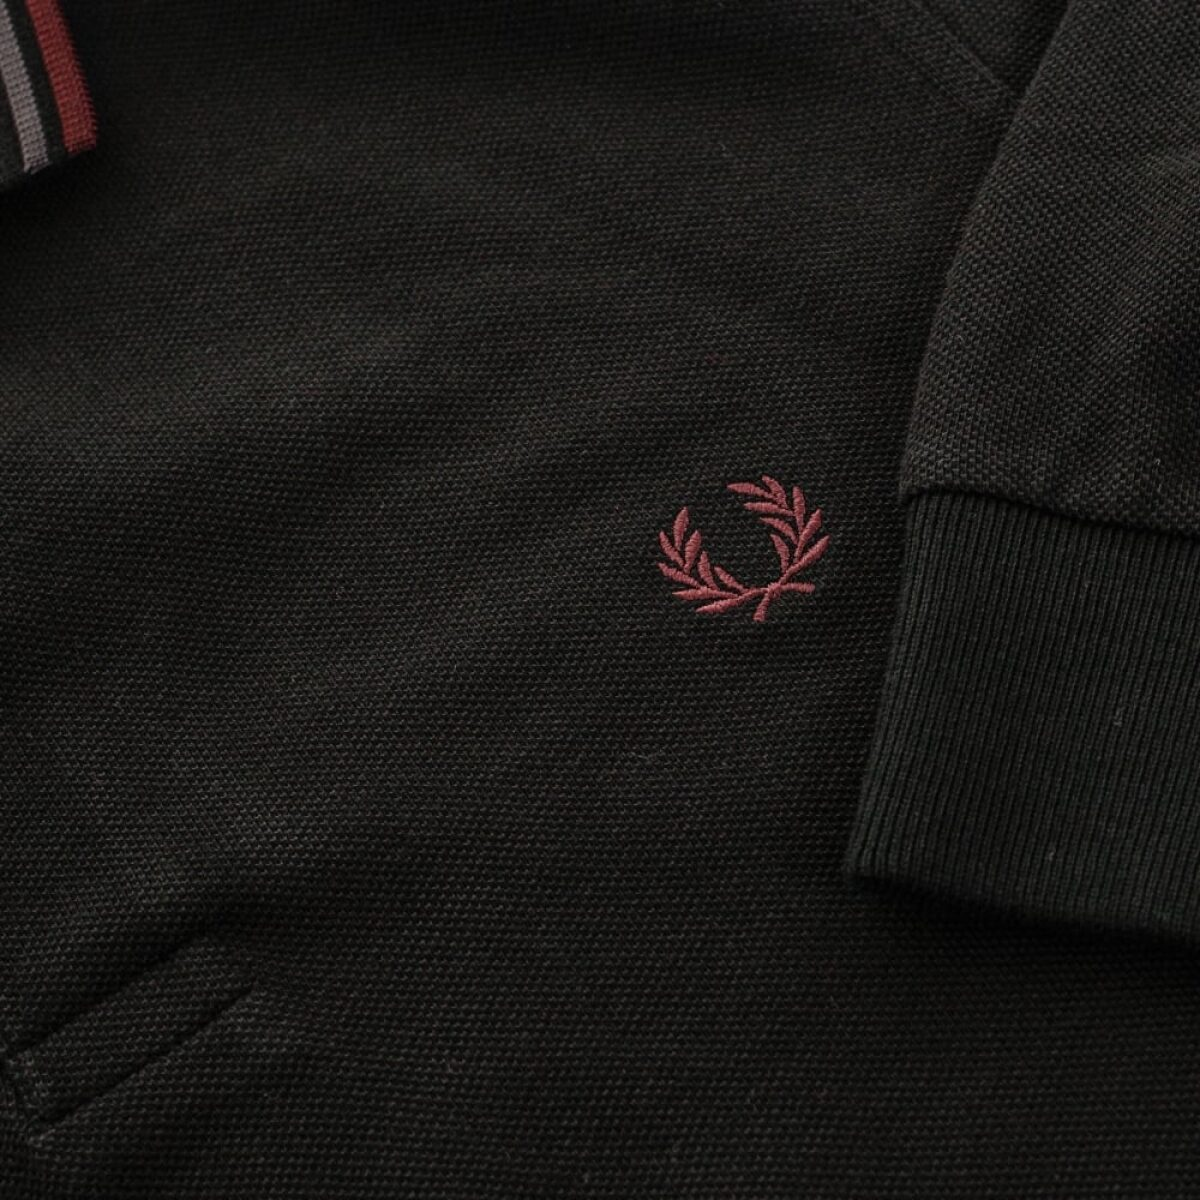 fred perry authentic fred perry twin tipped black ls polo shirt m3636 102 p24818 95665 image